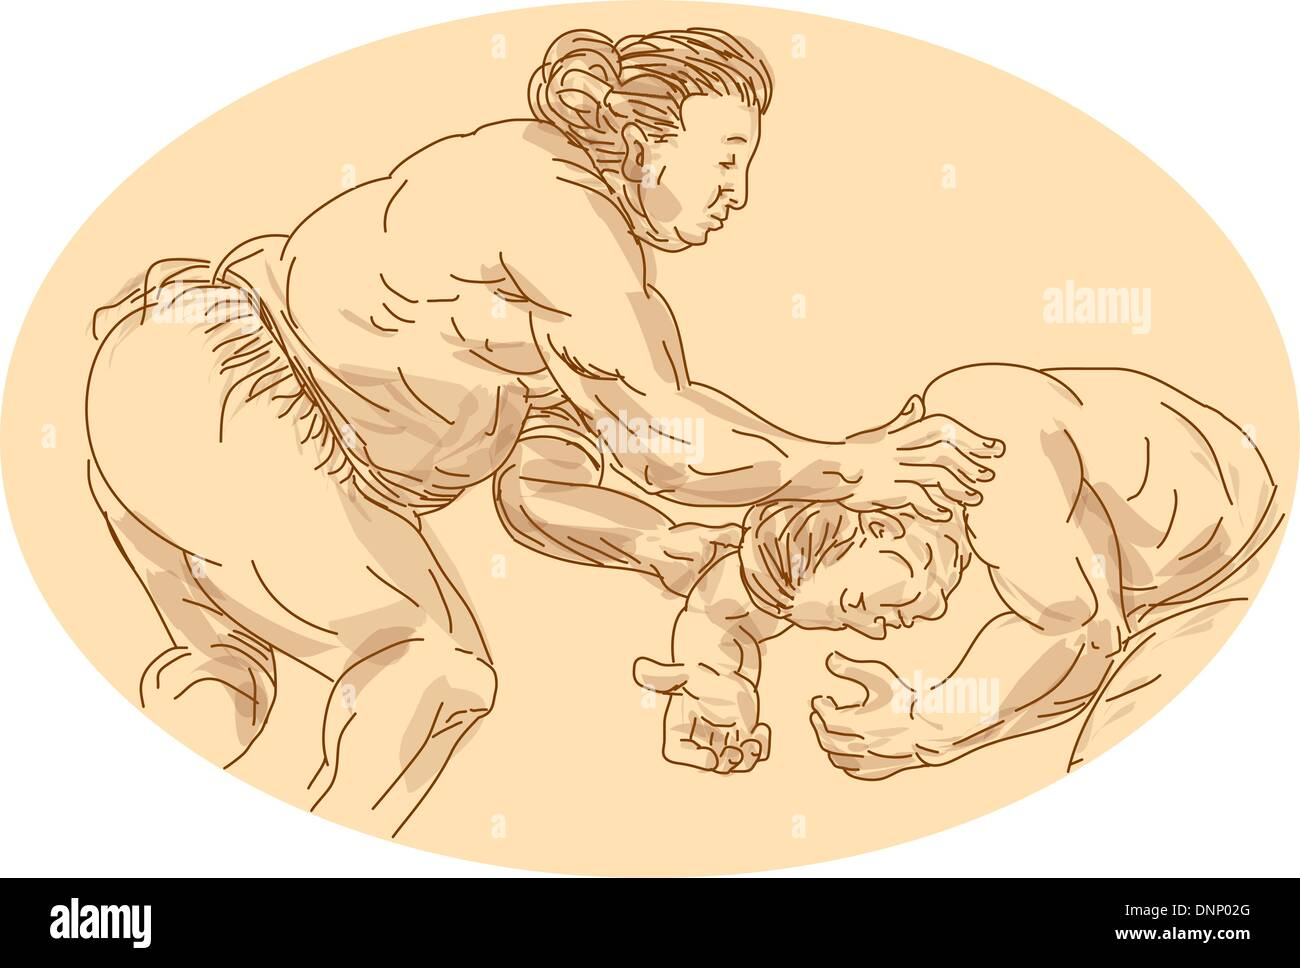 Hand drawn and sketched illustration of two sumo wrestlers wrestling viewed from the side set inside ellipse. - Stock Image